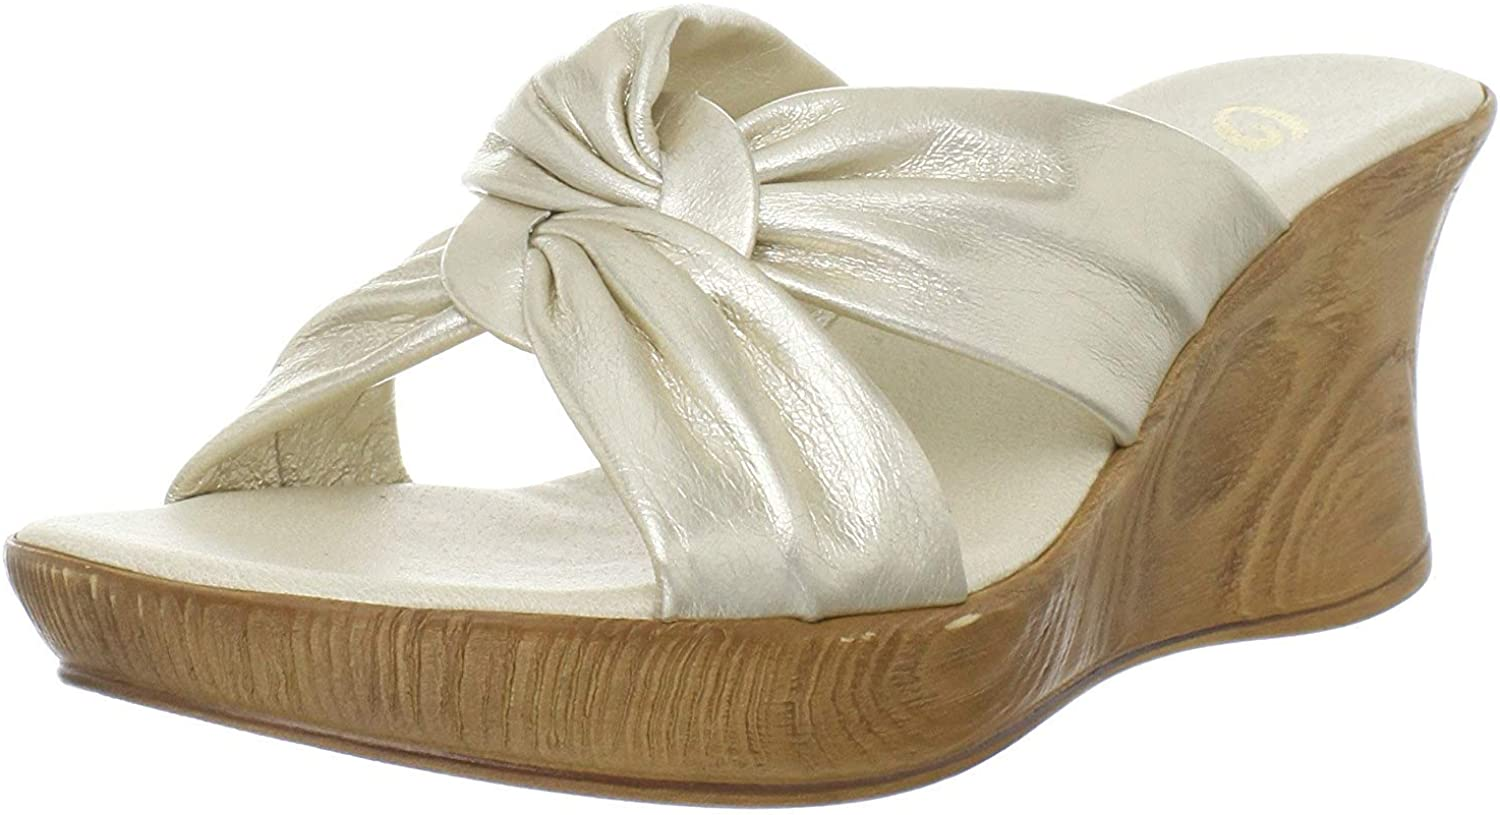 Onex Women's Puffy Animer and price revision Wedge Max 65% OFF Sandal